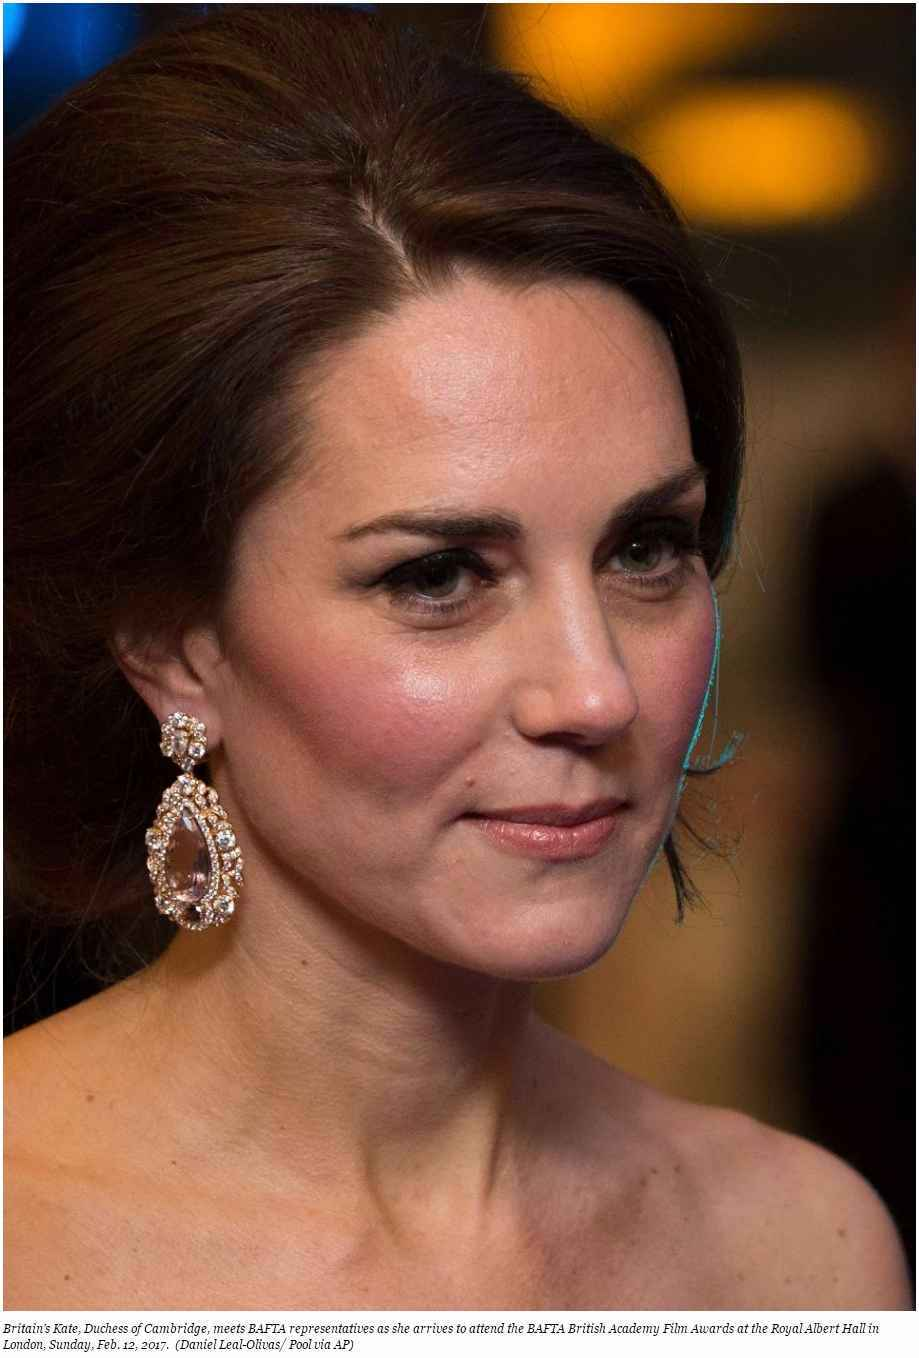 Britain's Kate Duchess of Cambridge meets BAFTA representatives as she arrives to attend the BAFTA British Academy Film